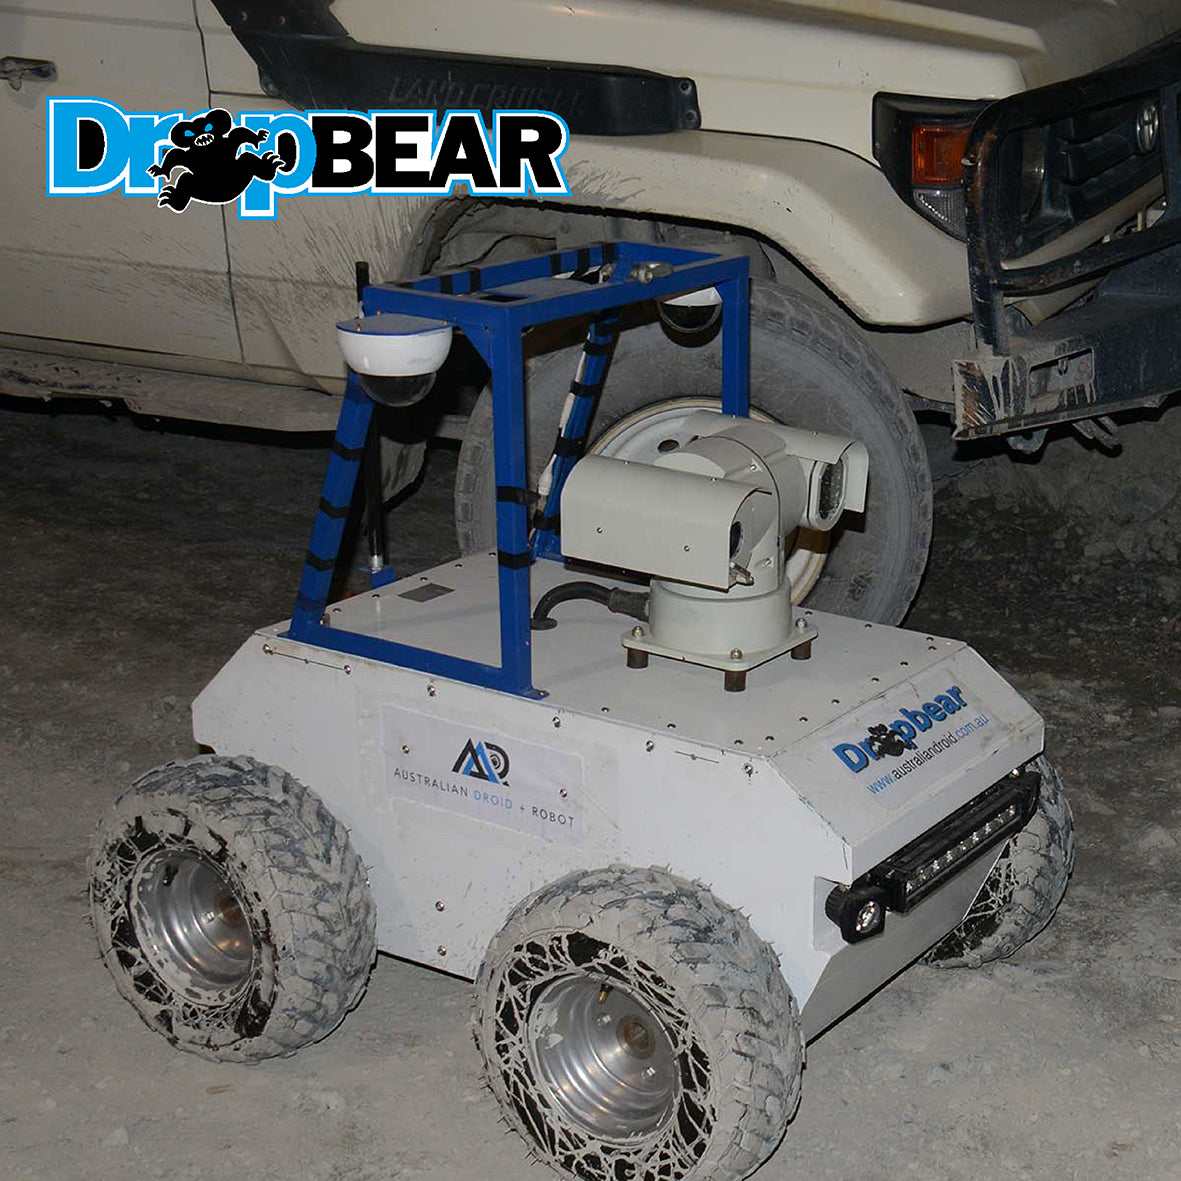 Dropbear Mine Inspection Robot